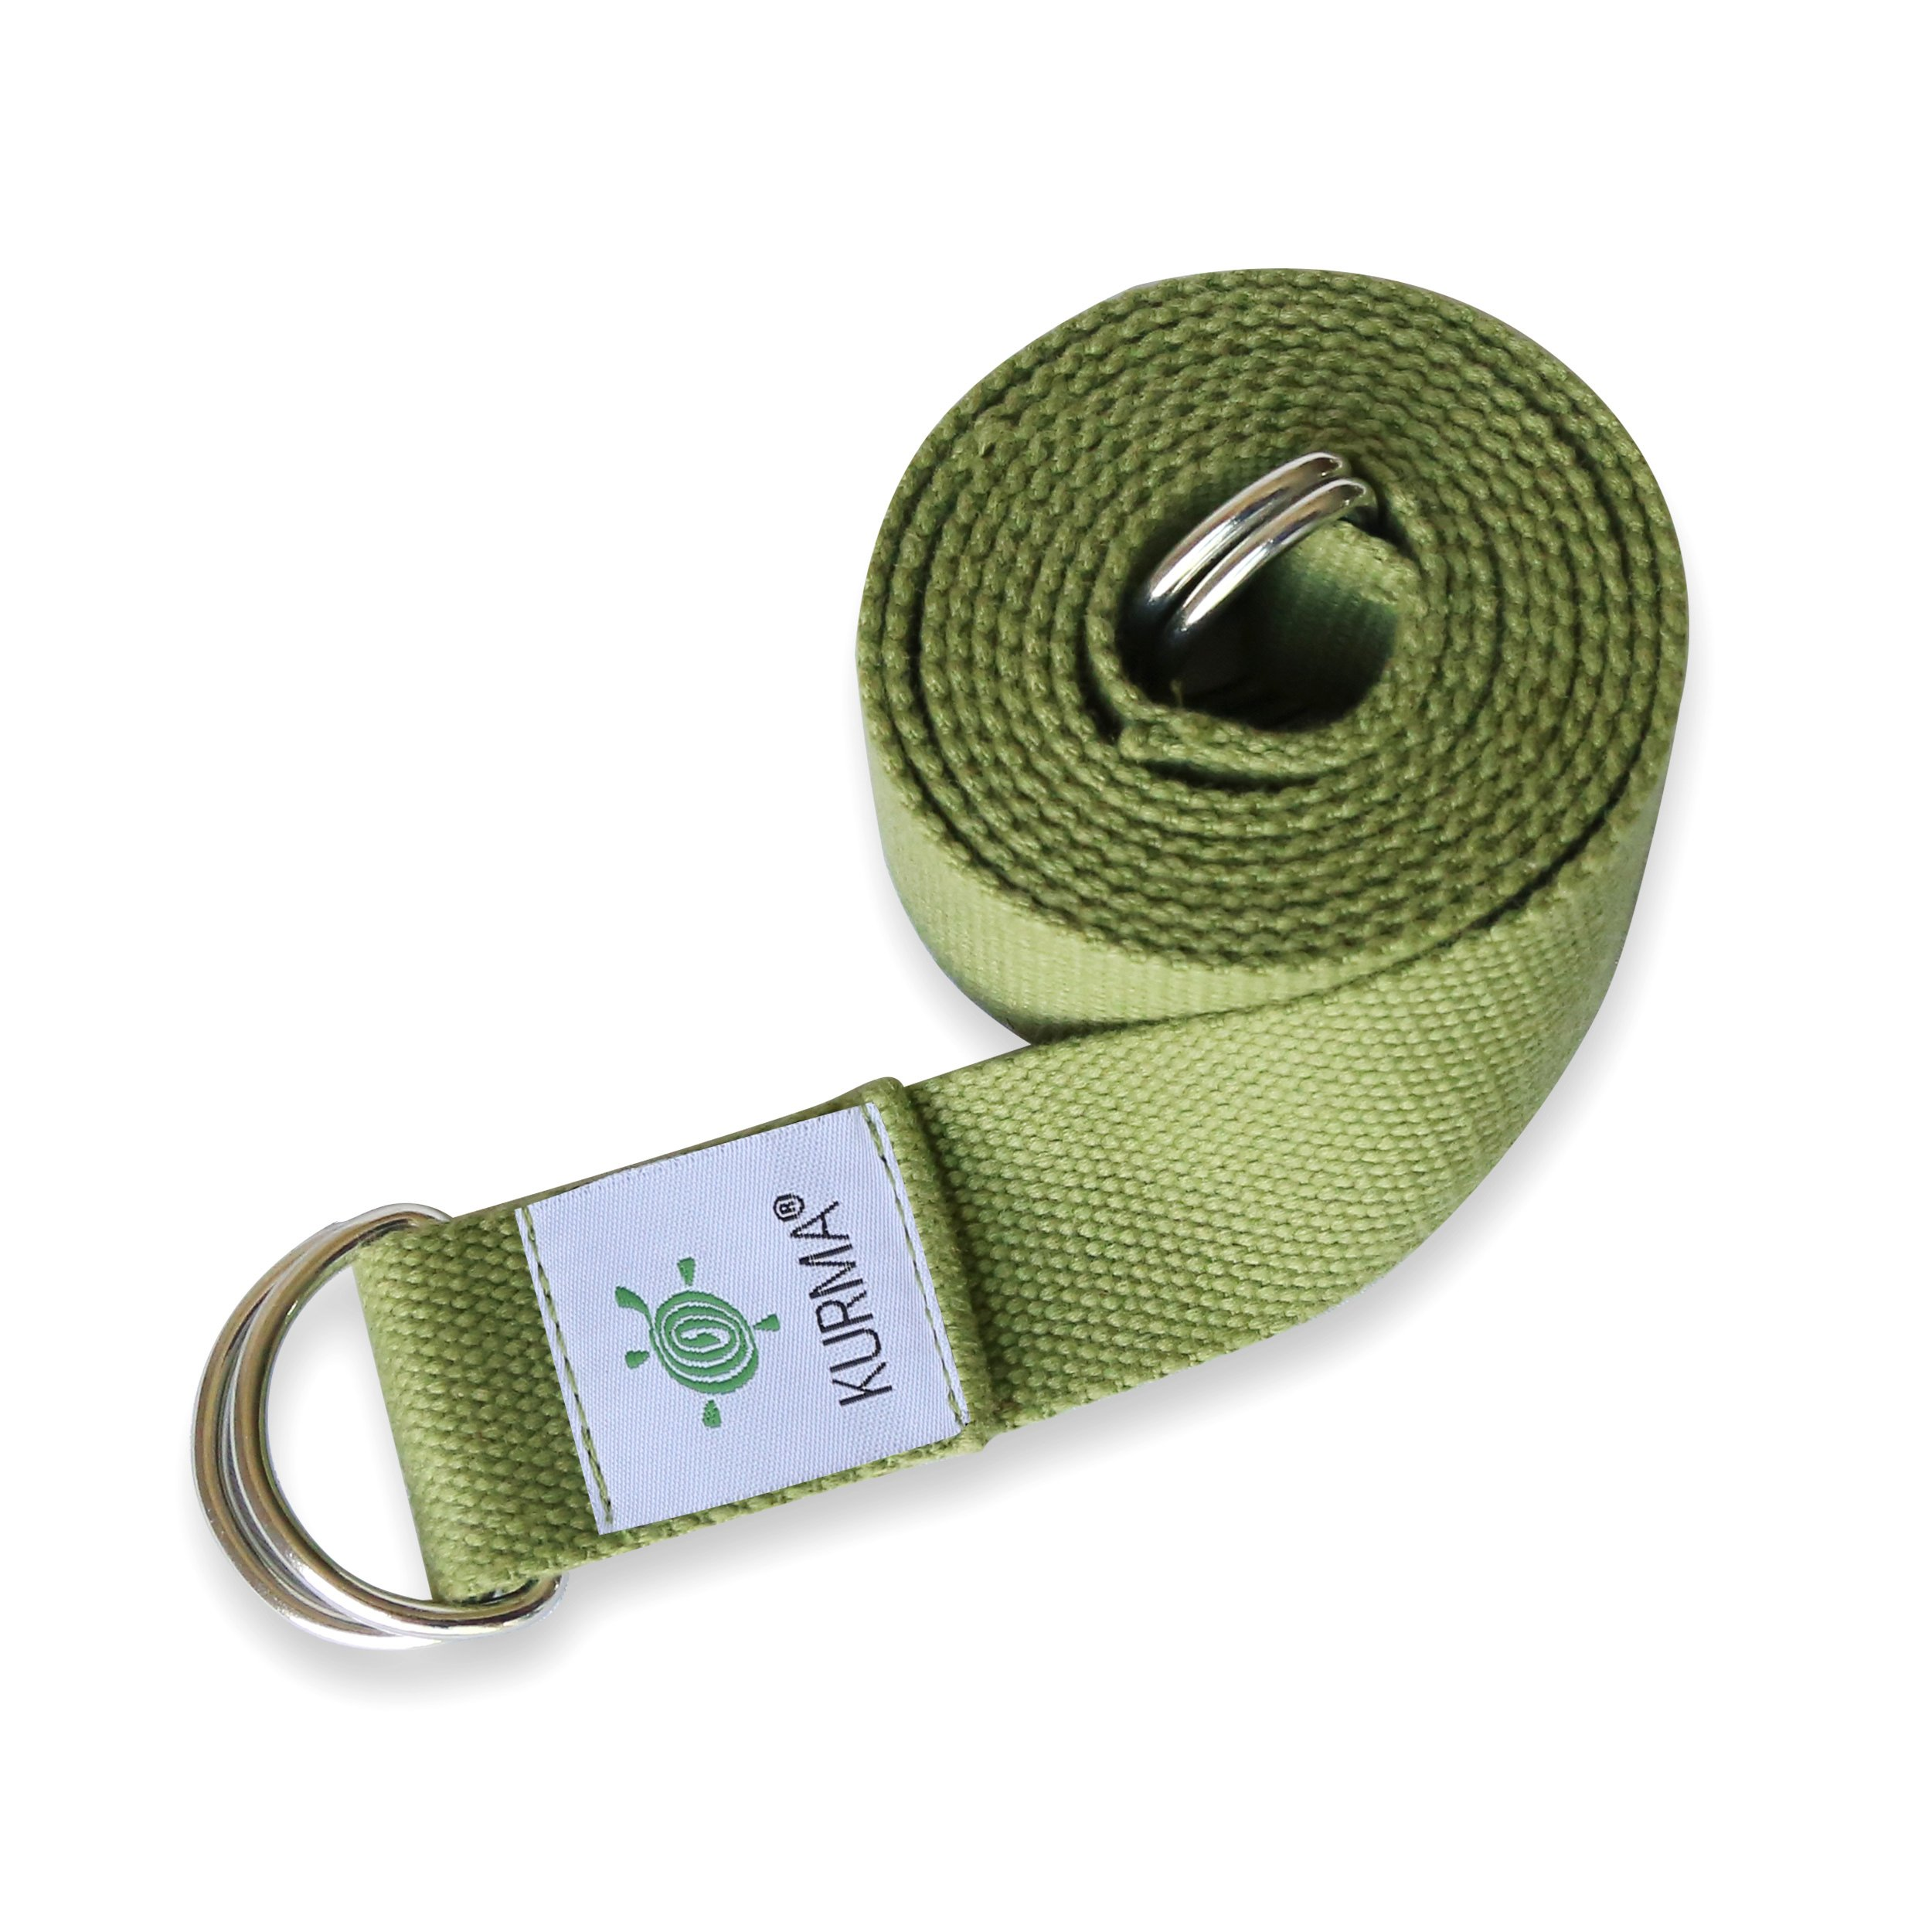 Yoga Belt Strap and Yoga Mat Carrying Sling in one, Cotton, Excellent Grip, Soft, For Stretching and Carrying Yoga Mat by Kurma Yoga